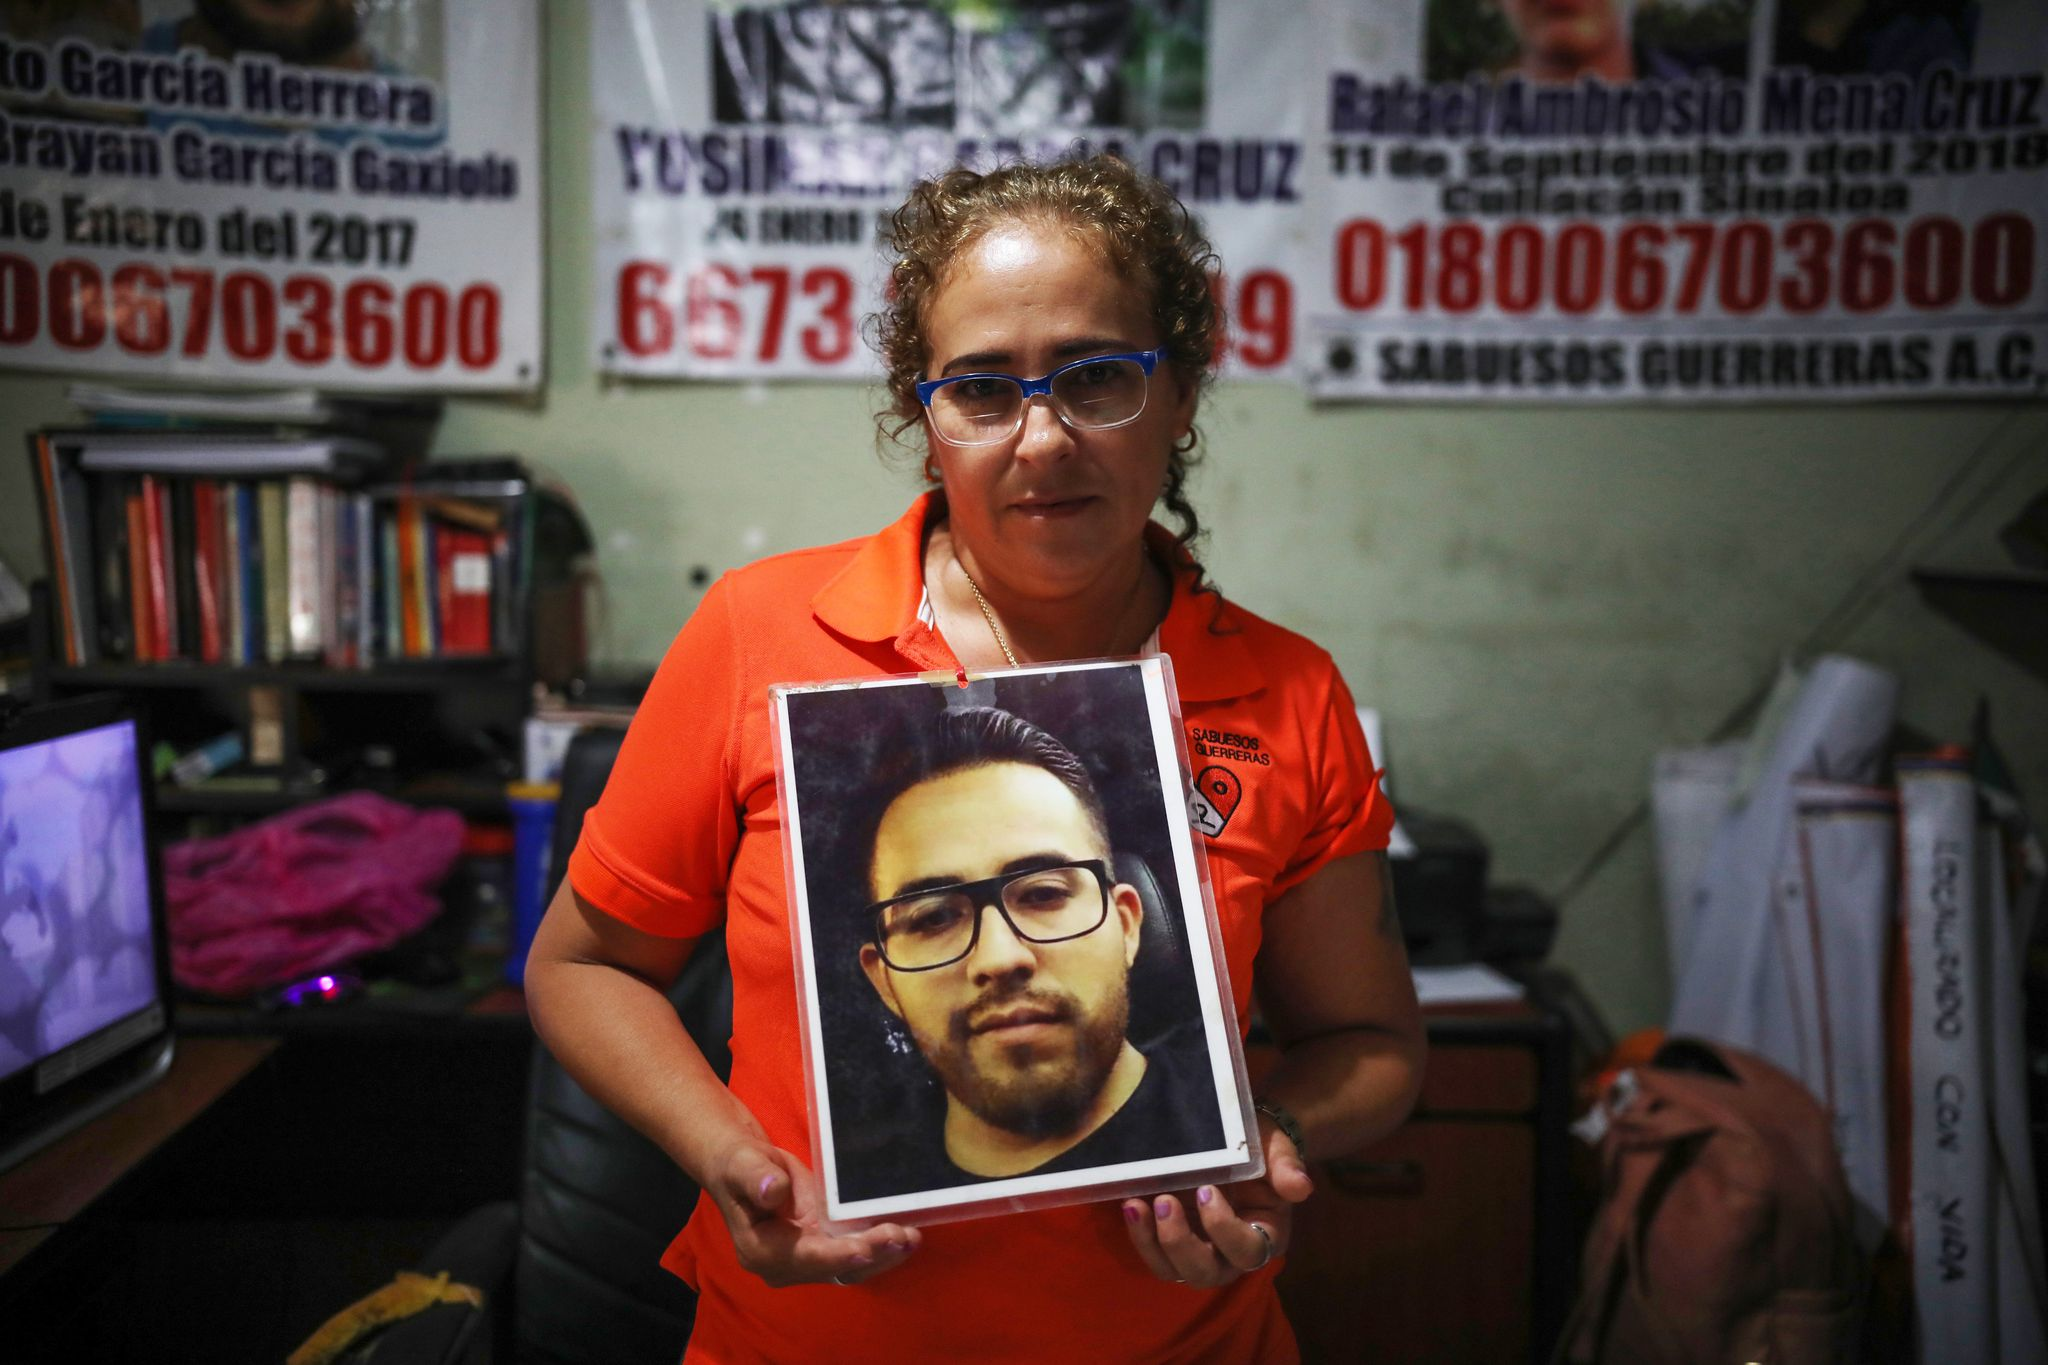 Maria Isabel Cruz Bernal, founder of Sabuesos Guerros, holds up a photo of her son, Yosimar Garcia, who has been missing for several years.